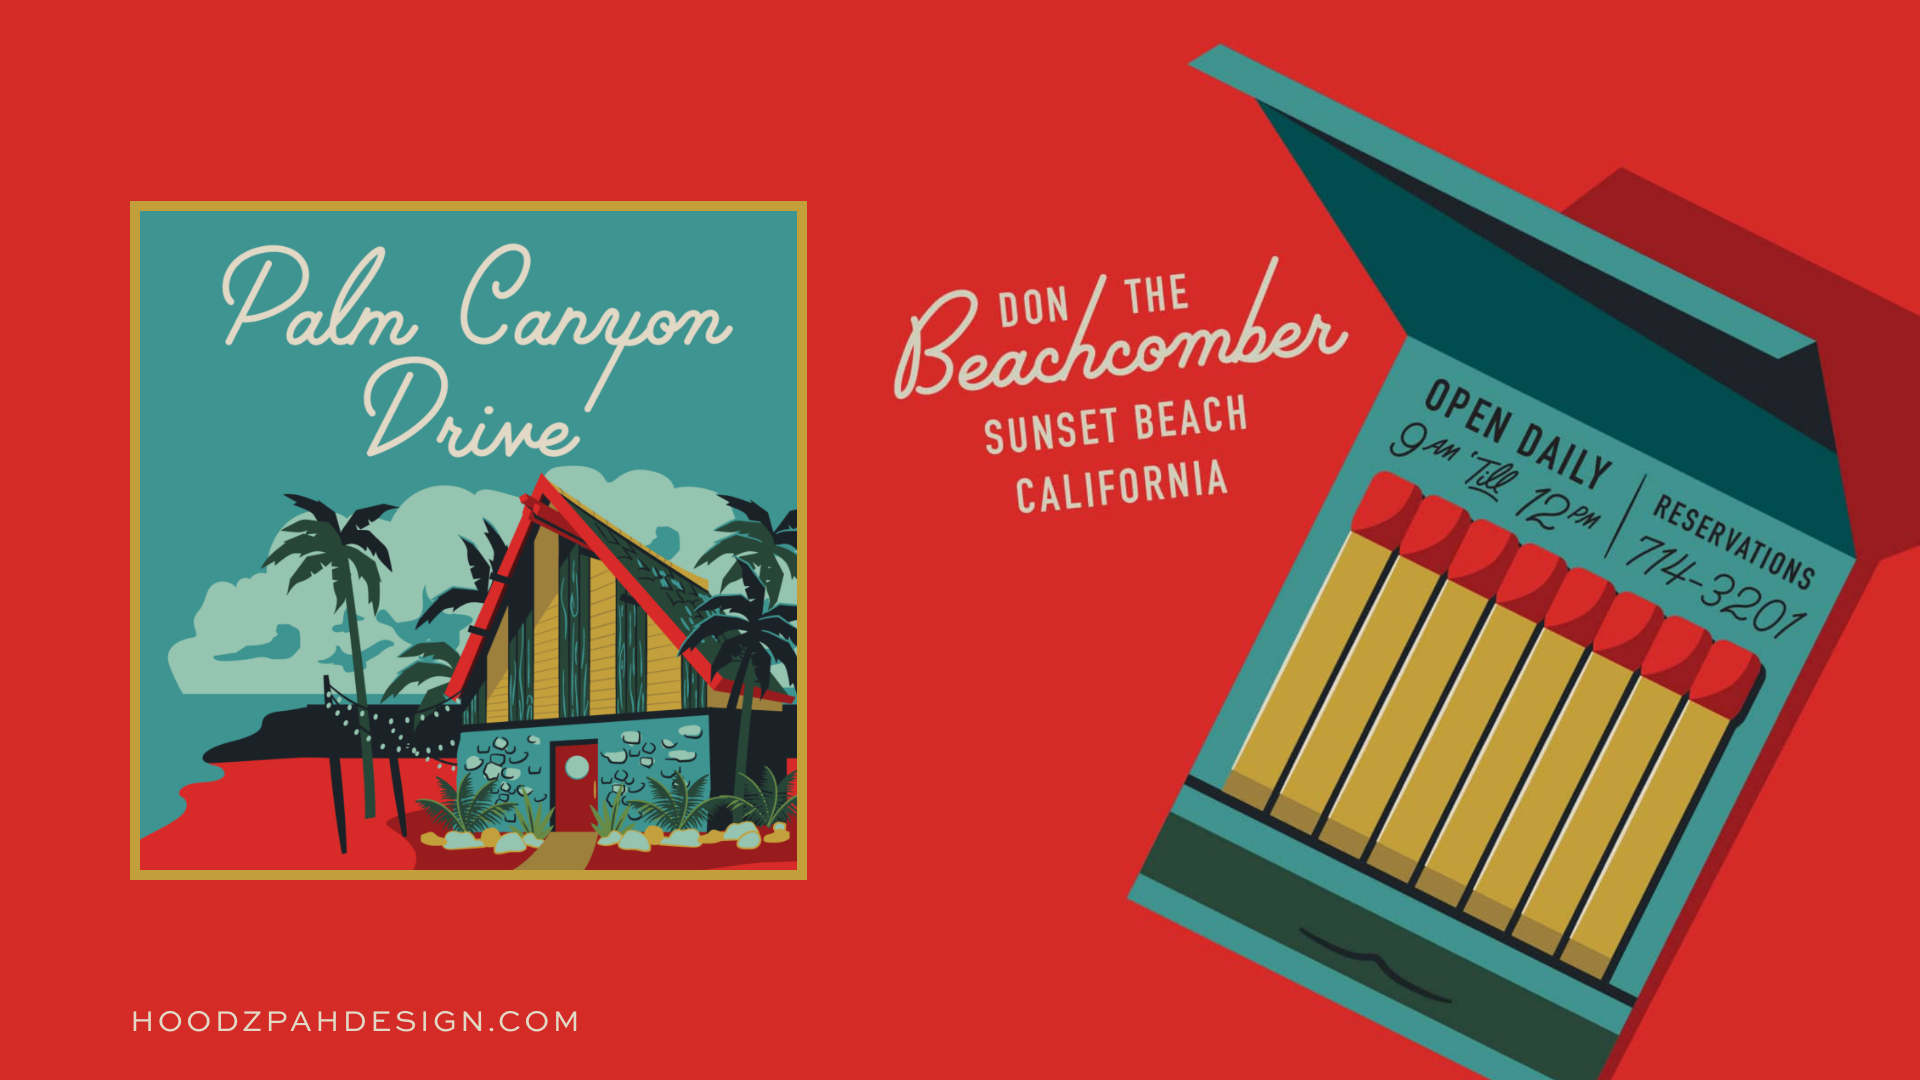 palm canyon drive font in use: a poster and matchbox